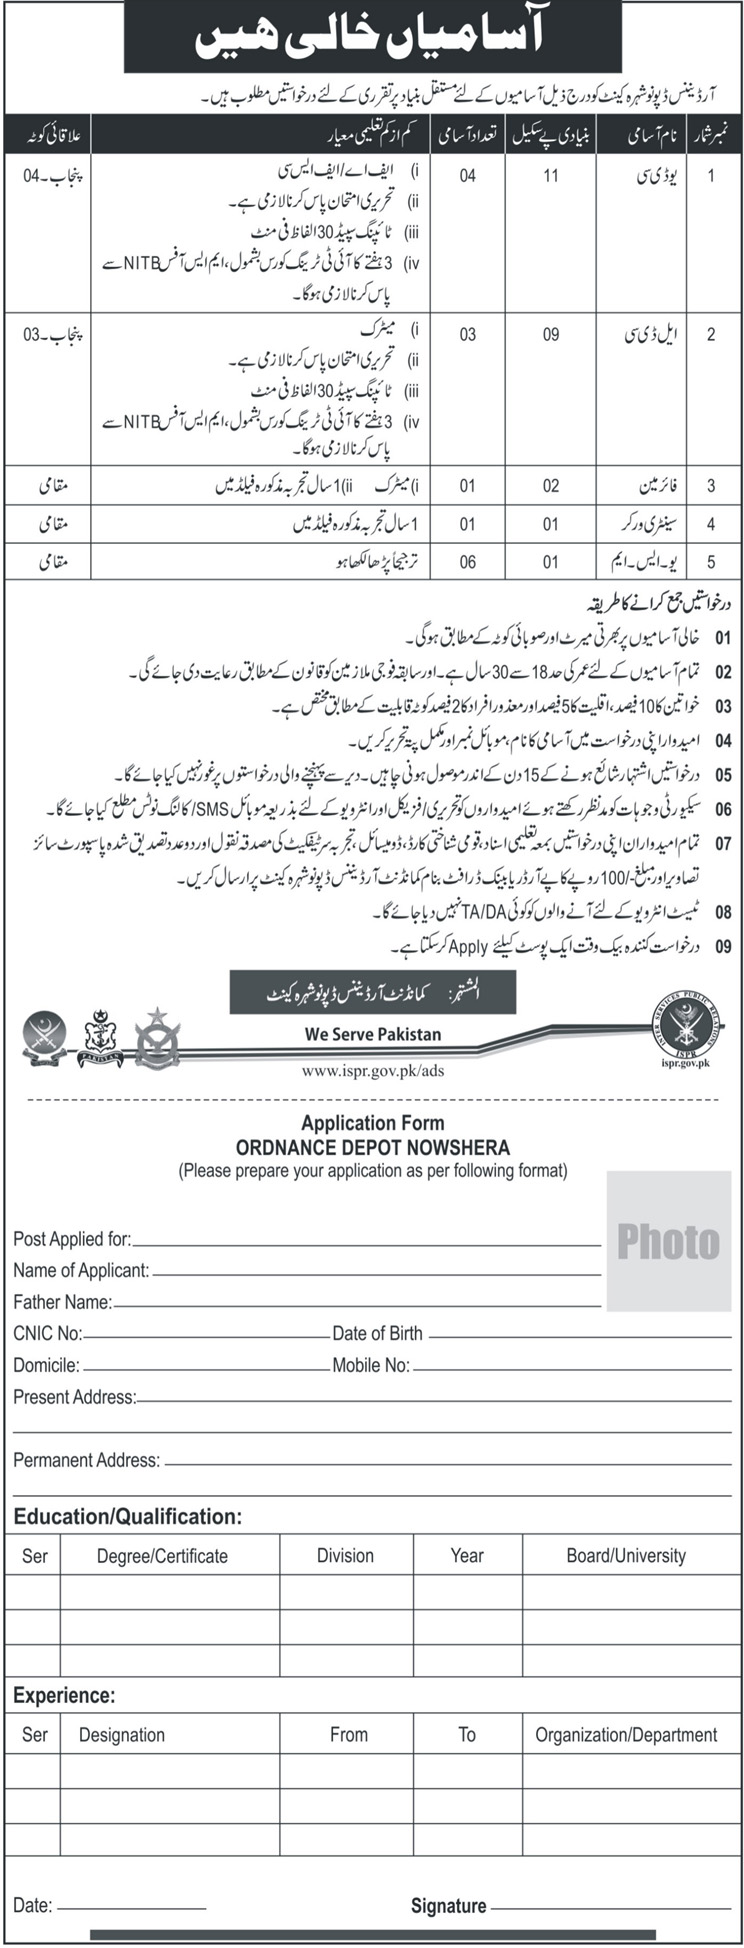 Jobs In Ordinance Depute Nowshera Cantt 25 Mar 2018